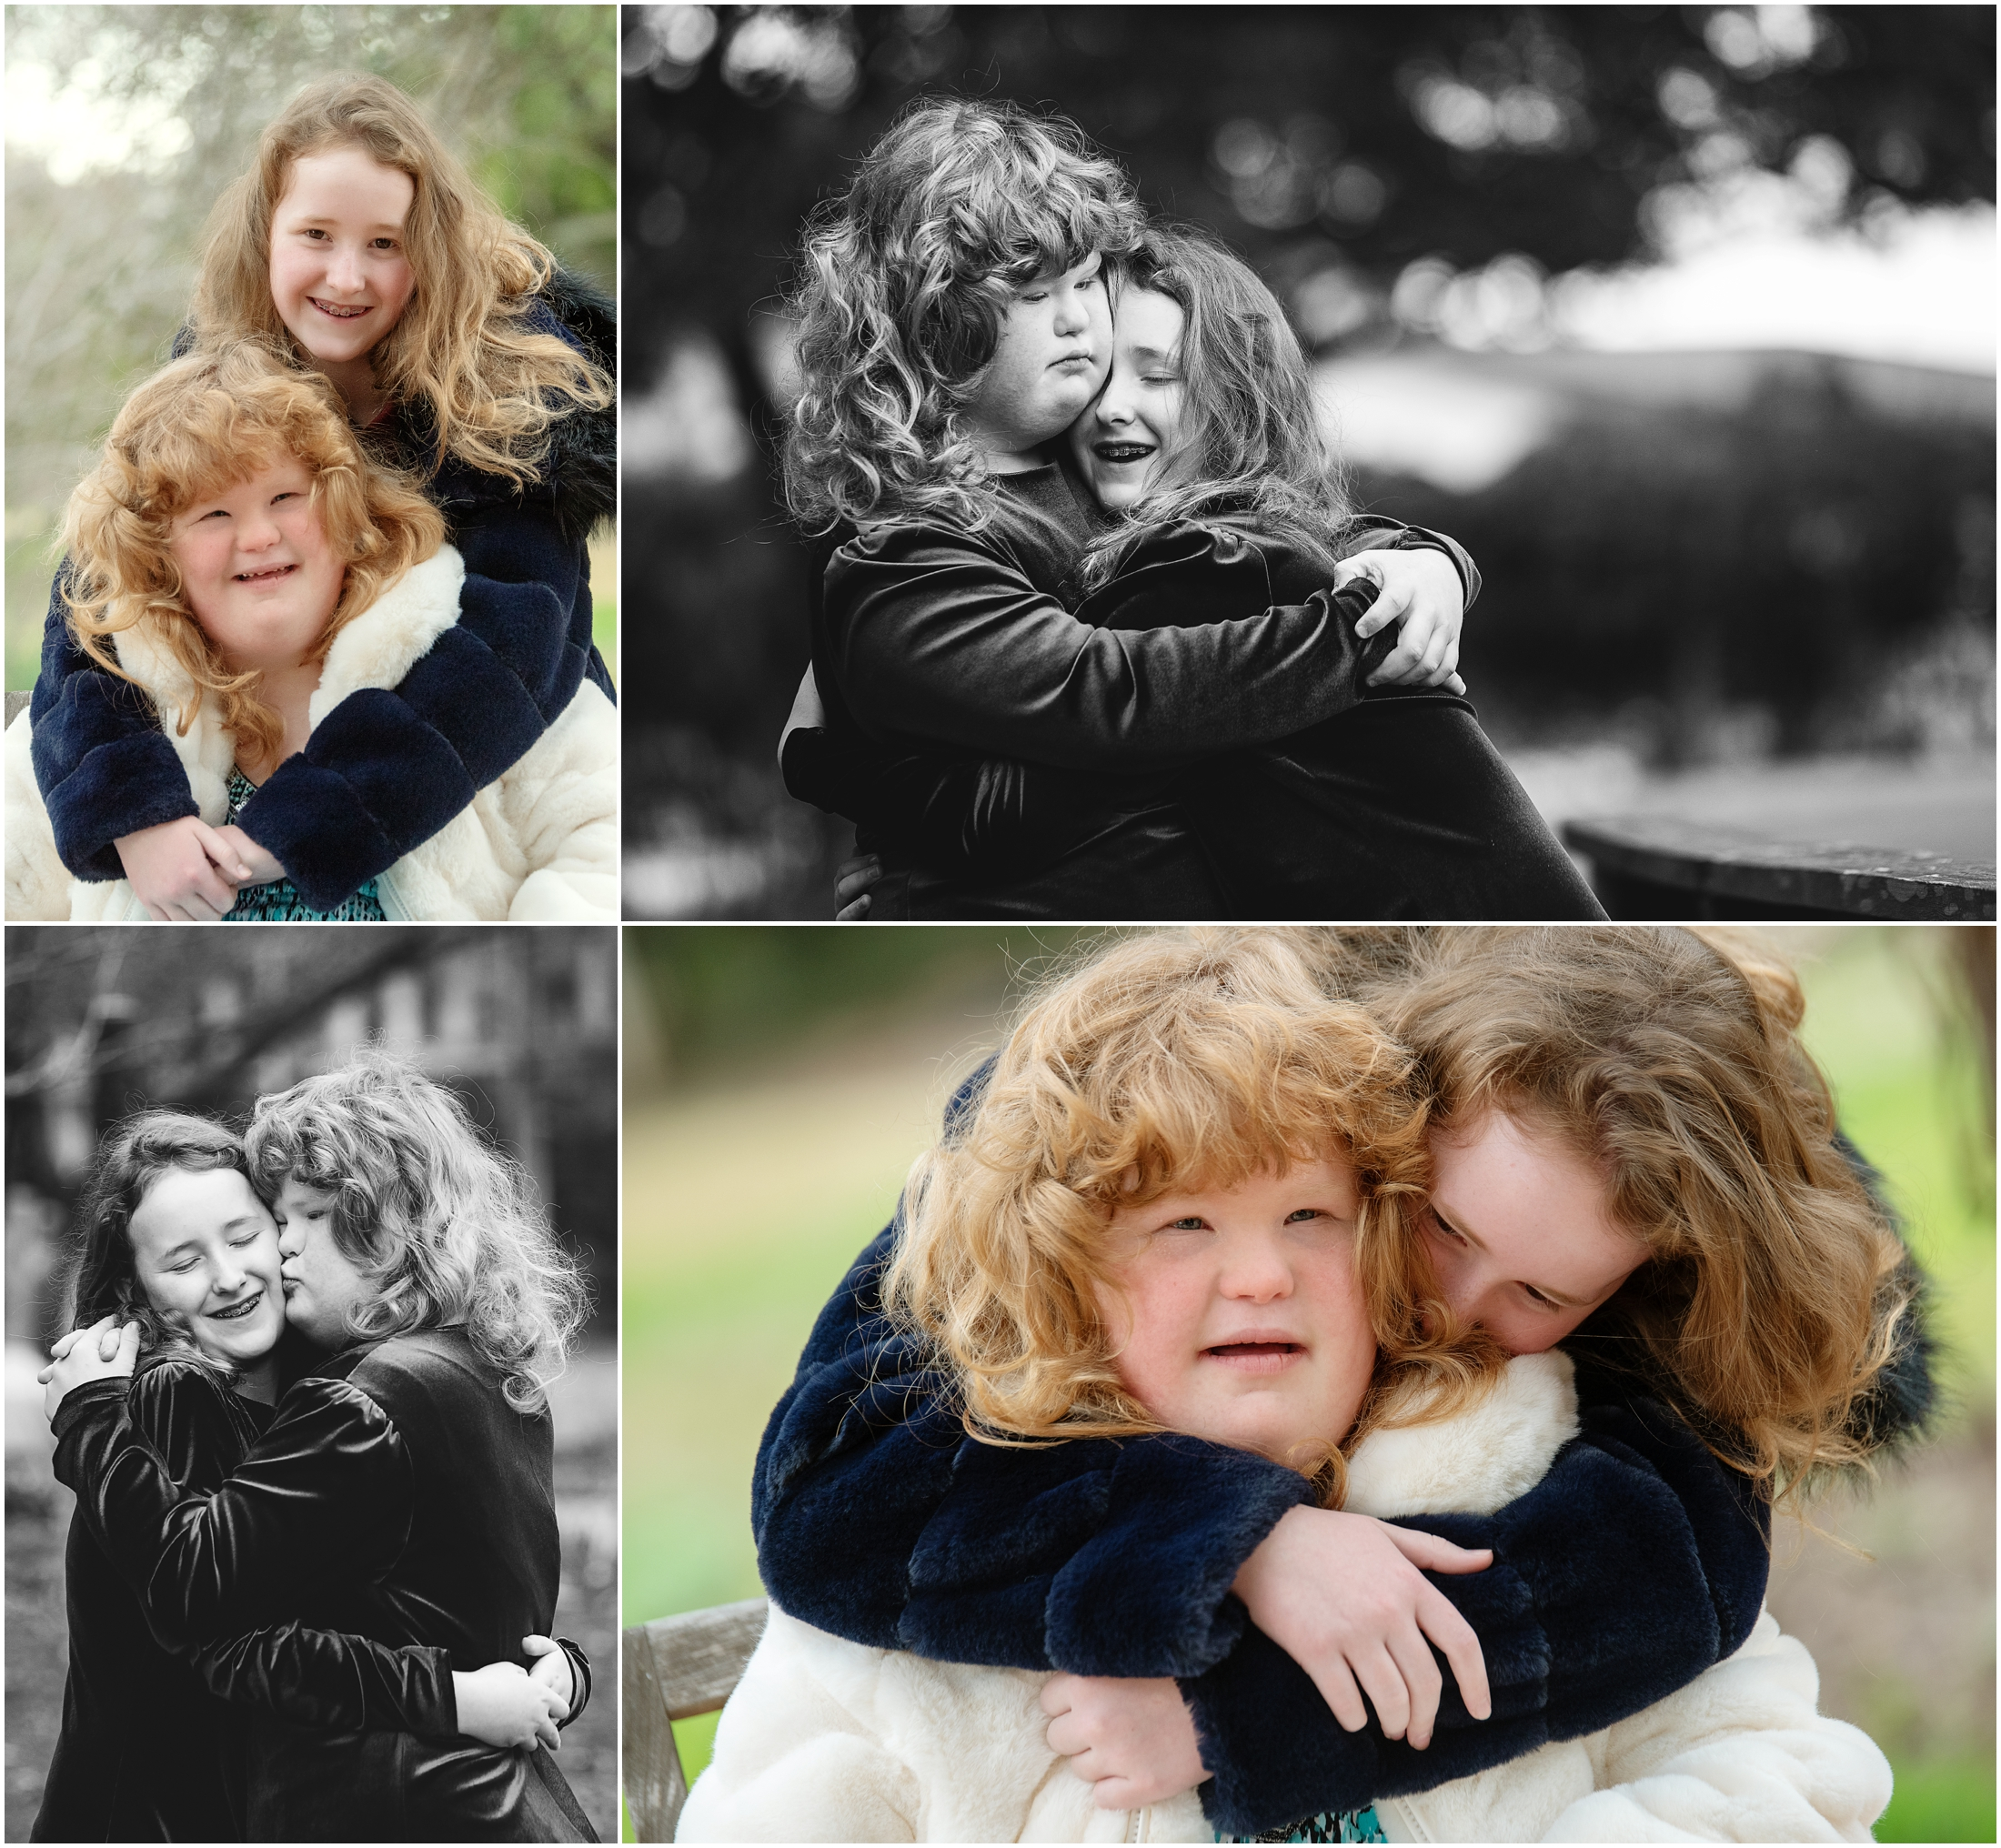 photo collage of two sisters hugging